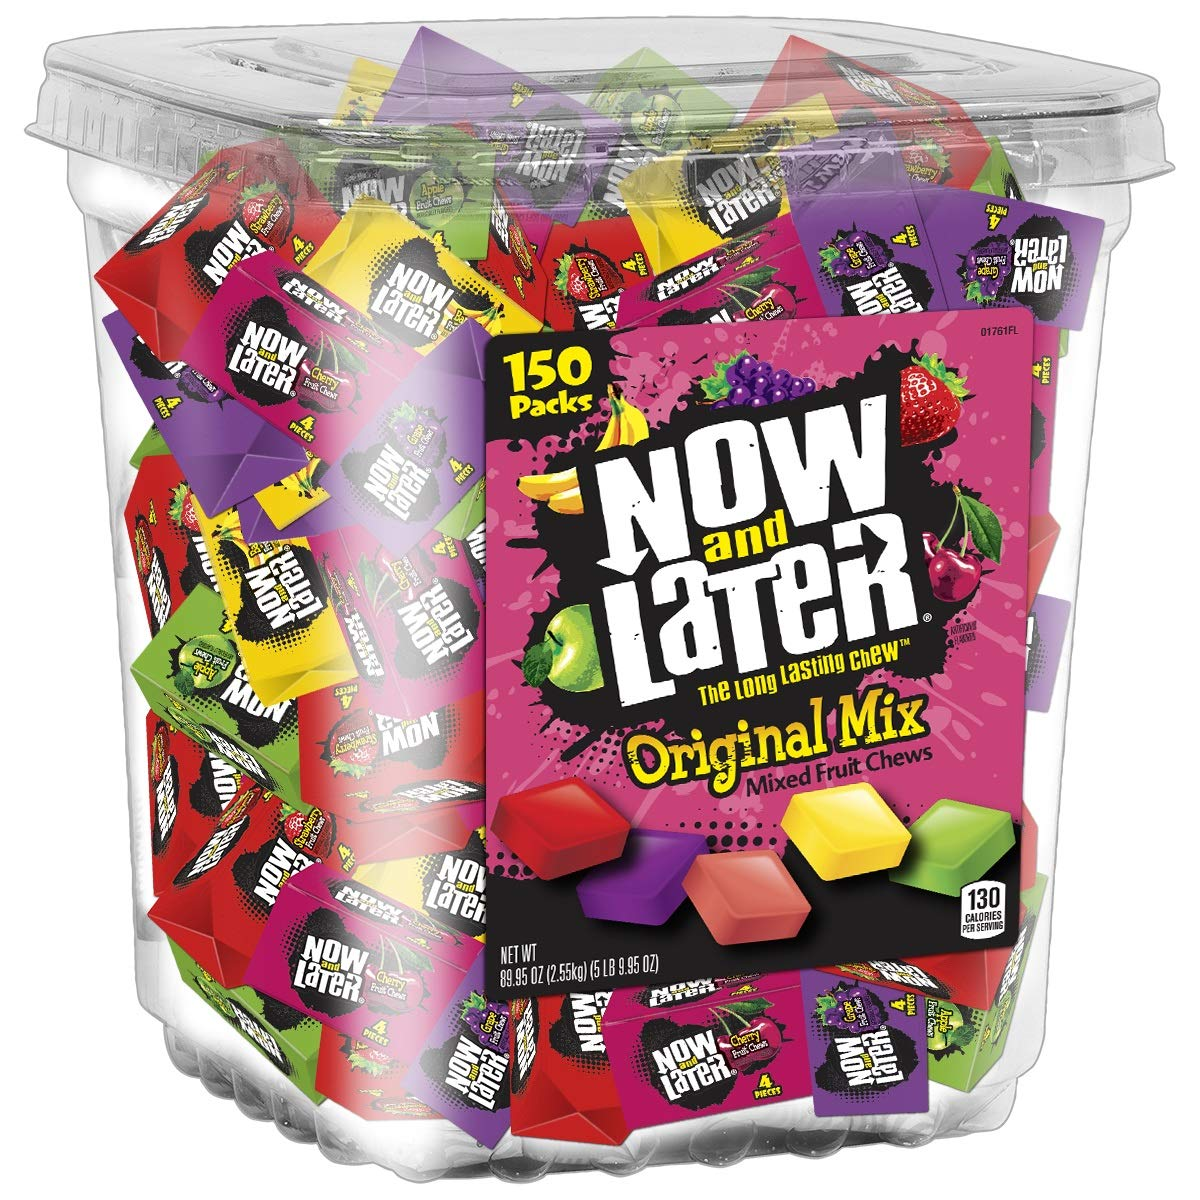 Now & Later Original Taffy Chews Candy, Assorted, 150 Count Chews, 90 Ounce Jar (Pack of 4) by Now and Later (Image #1)